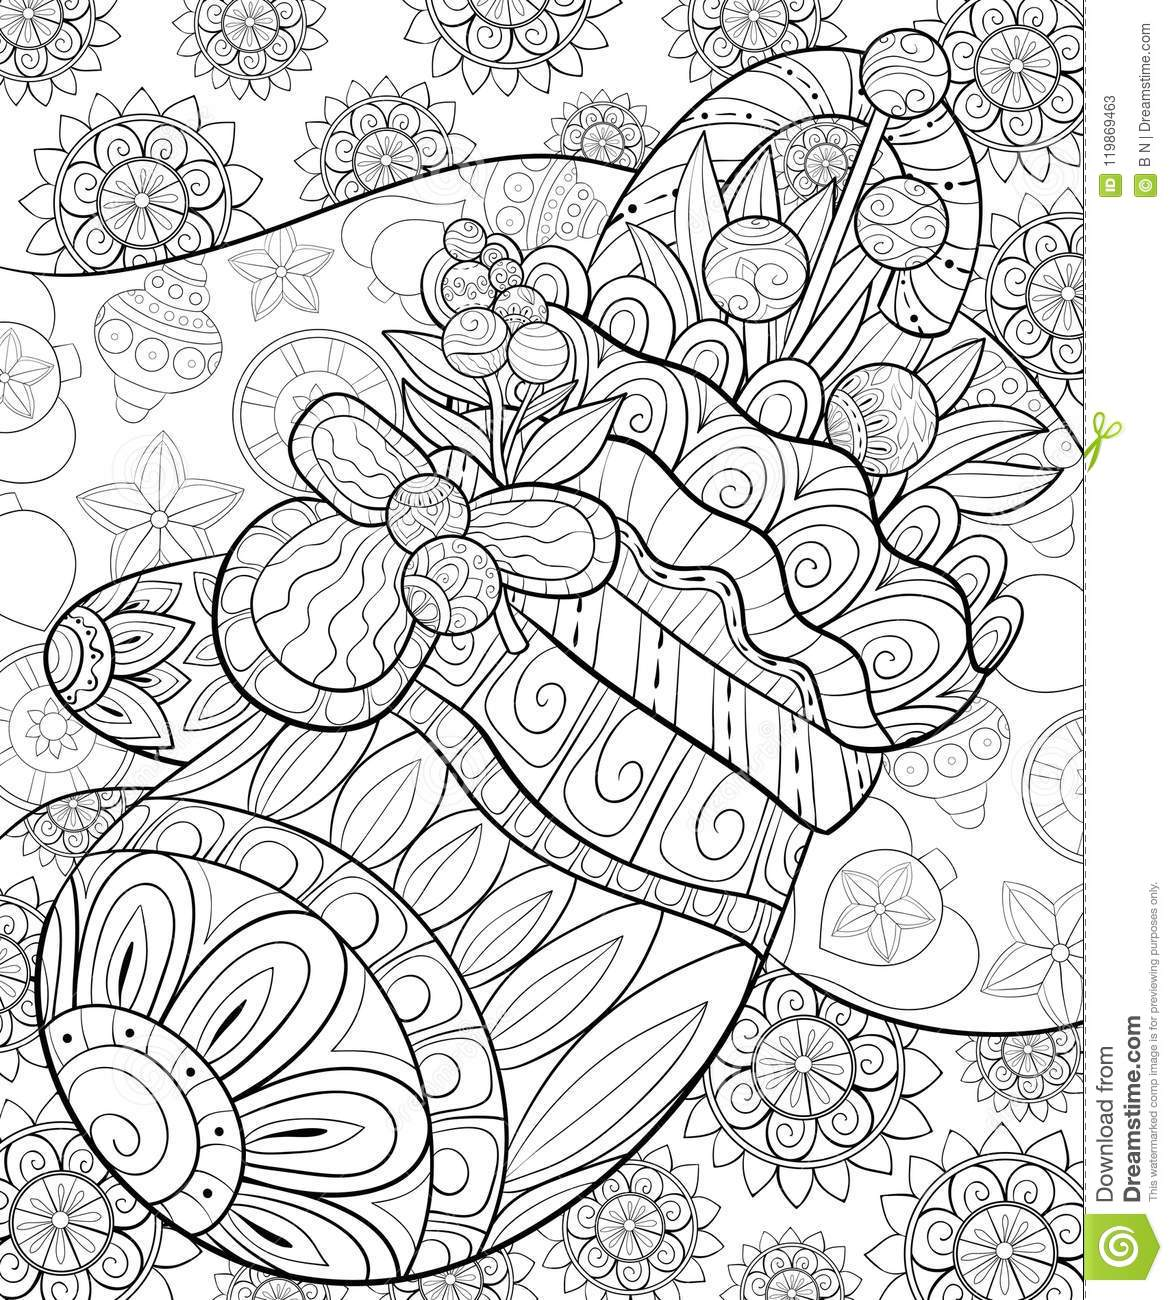 Zentangle Christmas Reindeer Coloring Page • FREE Printable eBook ... | 1300x1173